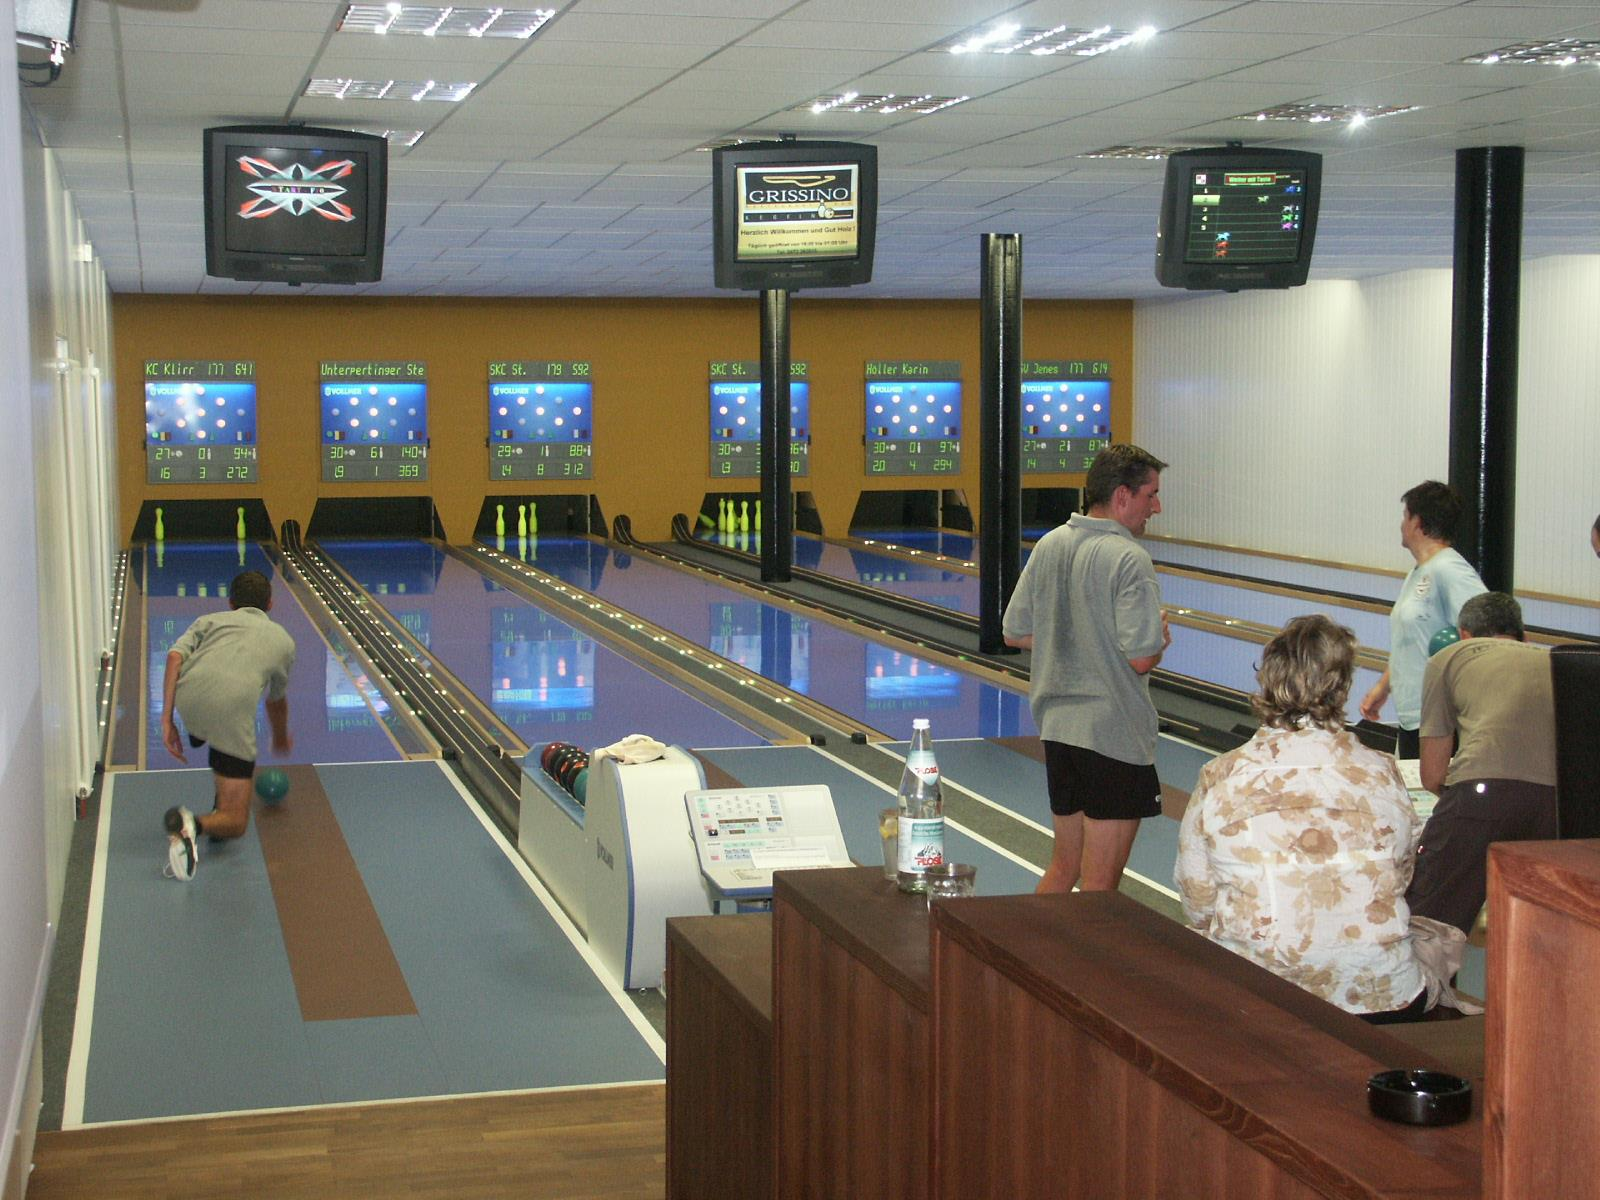 Bowling in the Acquarena of Bressanone/Brixen